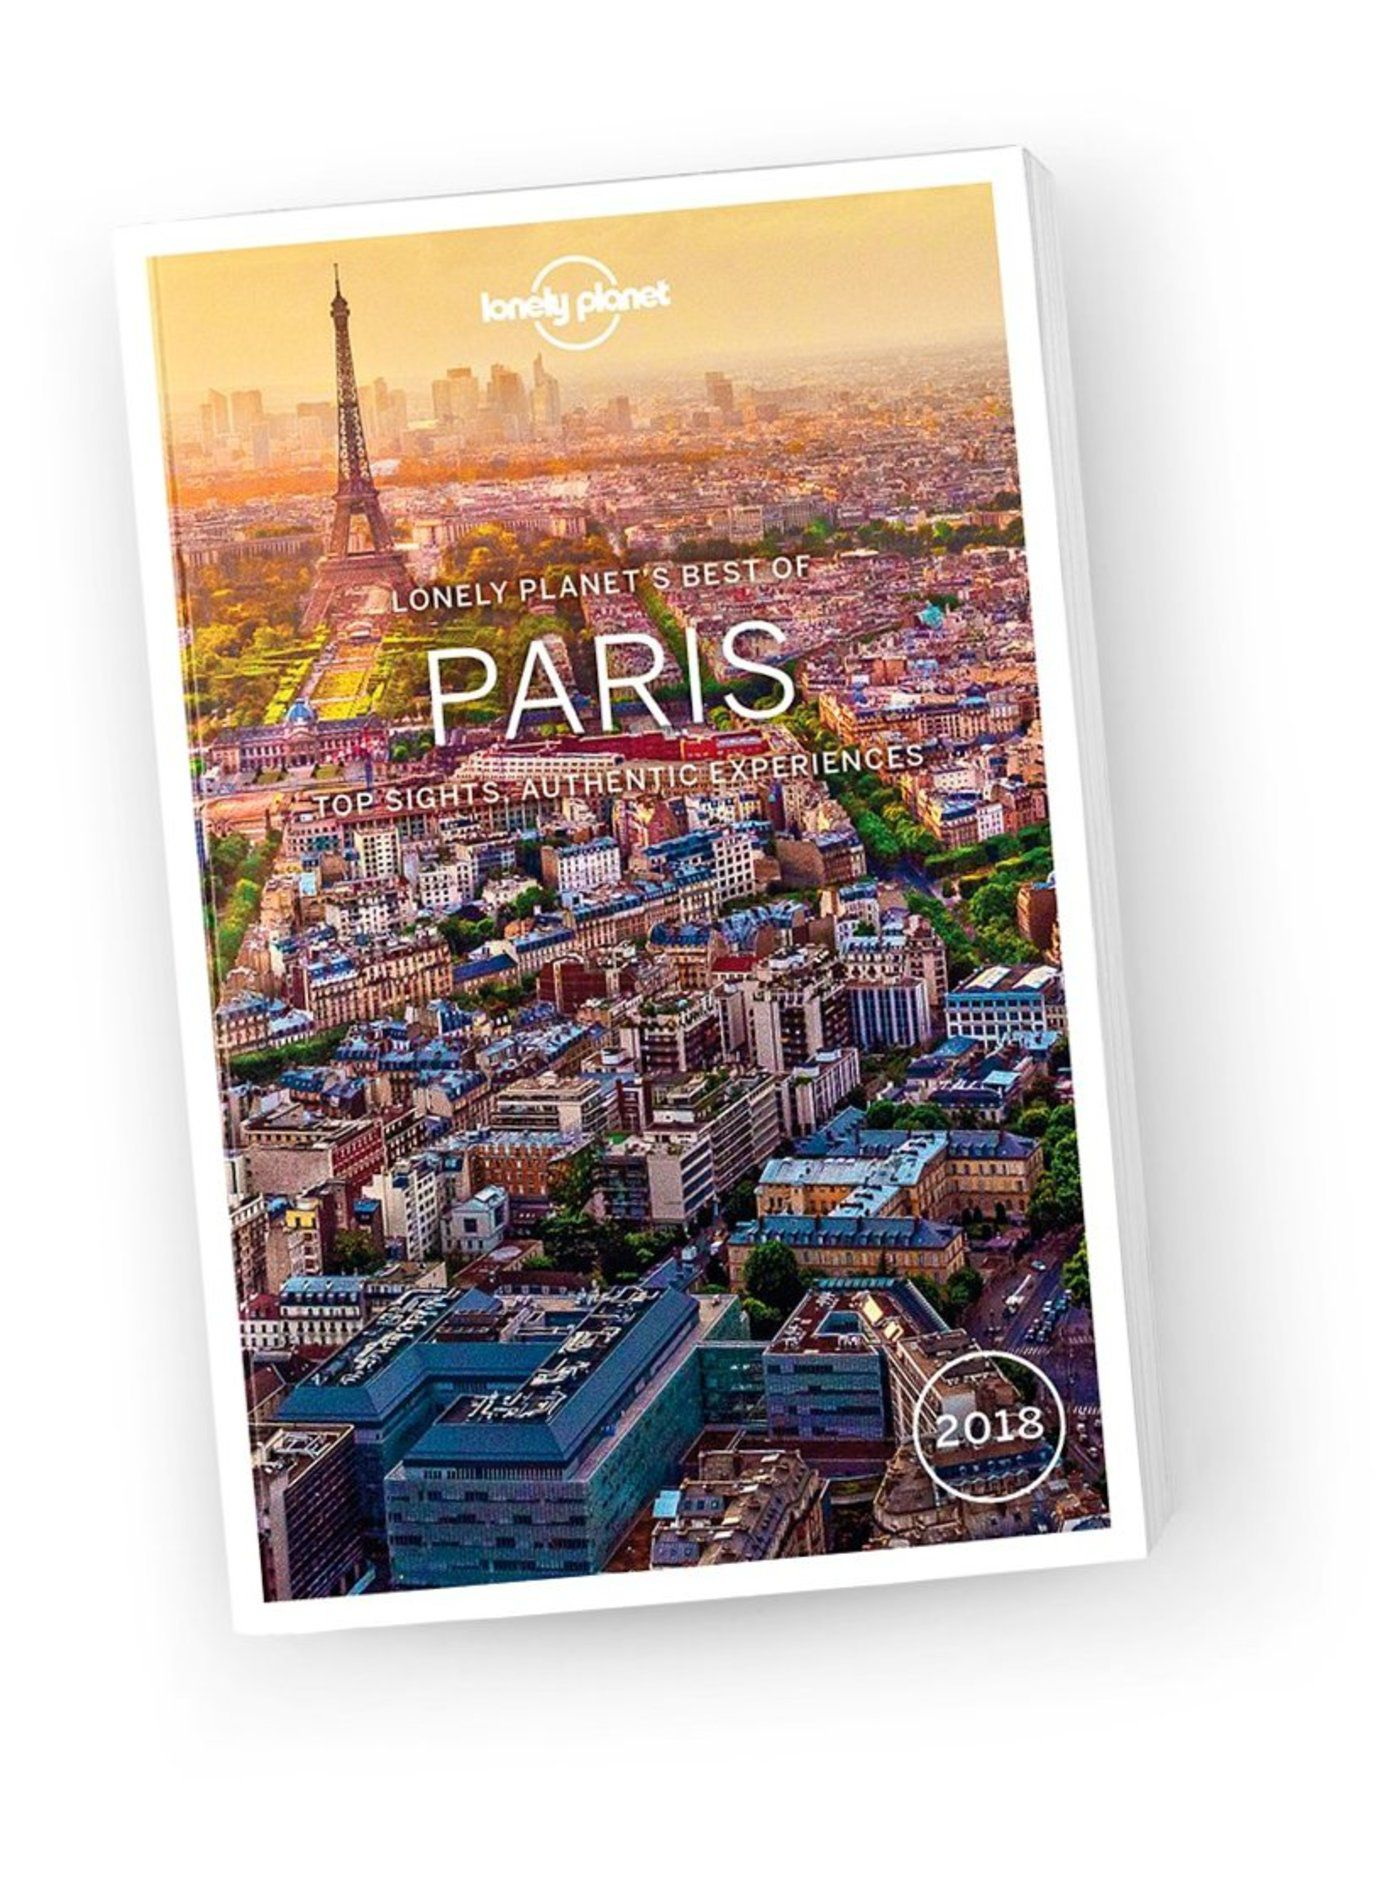 Lonely planets best of paris 2018 city guide lonely planet shop best of paris city guide 2018 edition fandeluxe Gallery